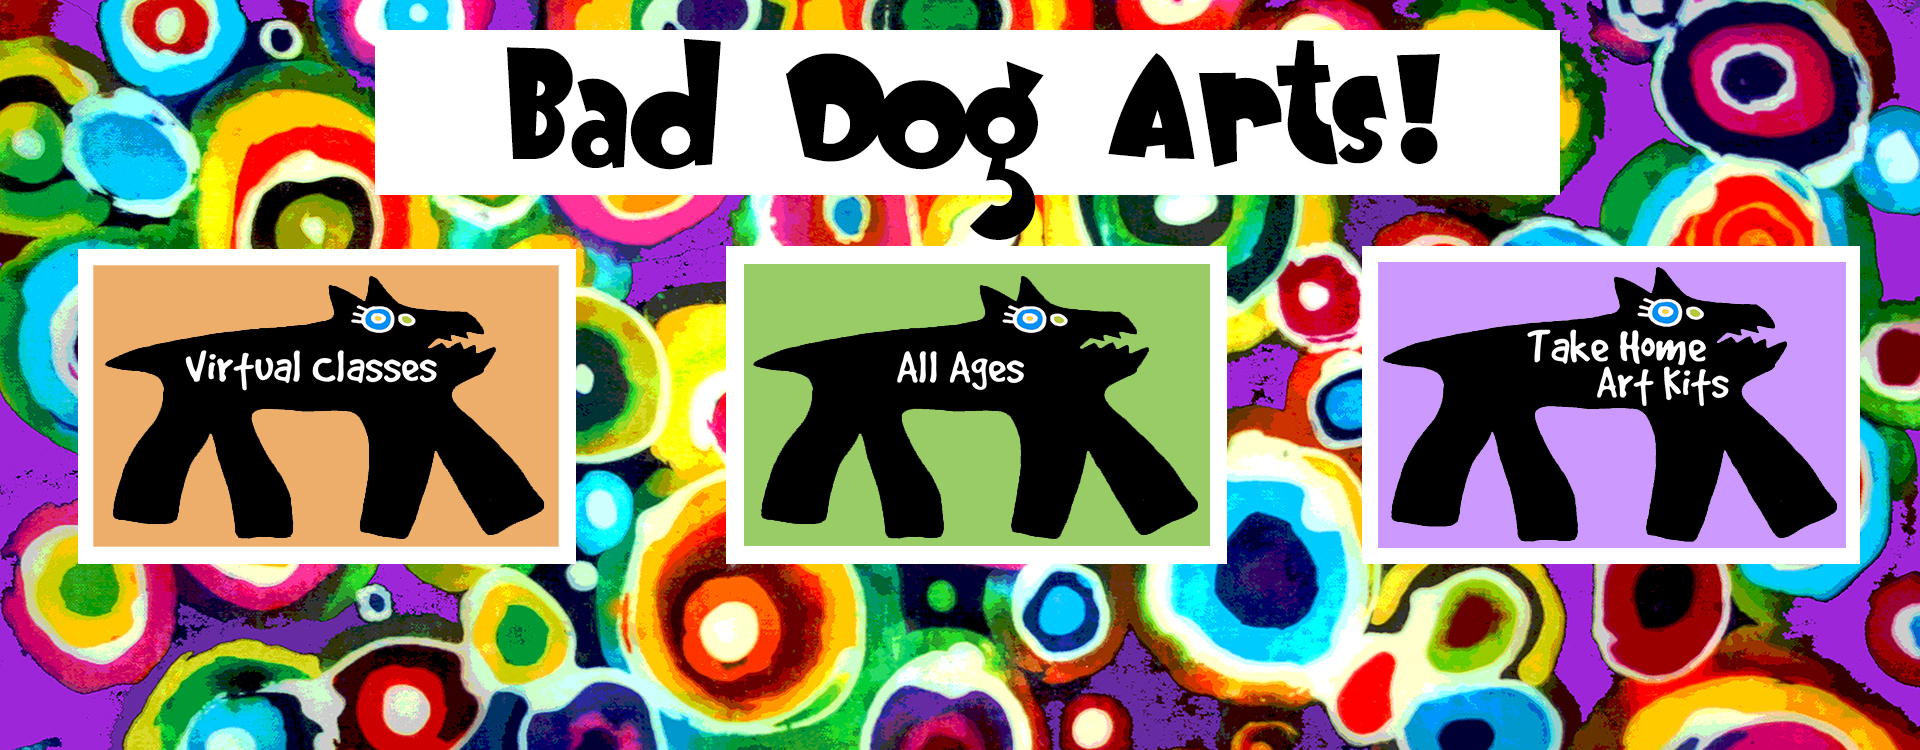 Bad Dog Arts